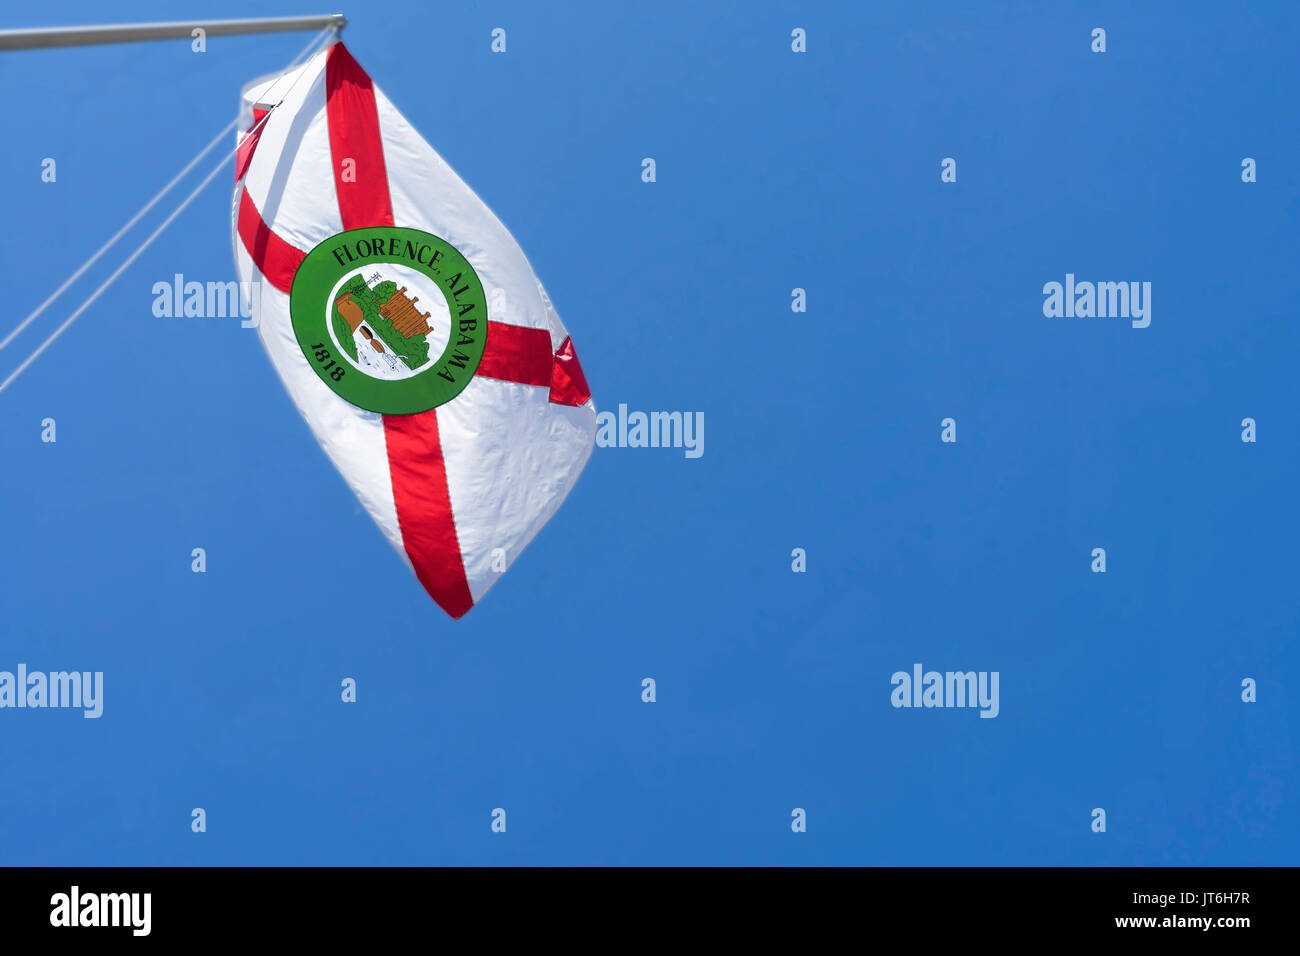 The flag of Florence, Alabama flutters in the breeze above the Tennessee River. - Stock Image